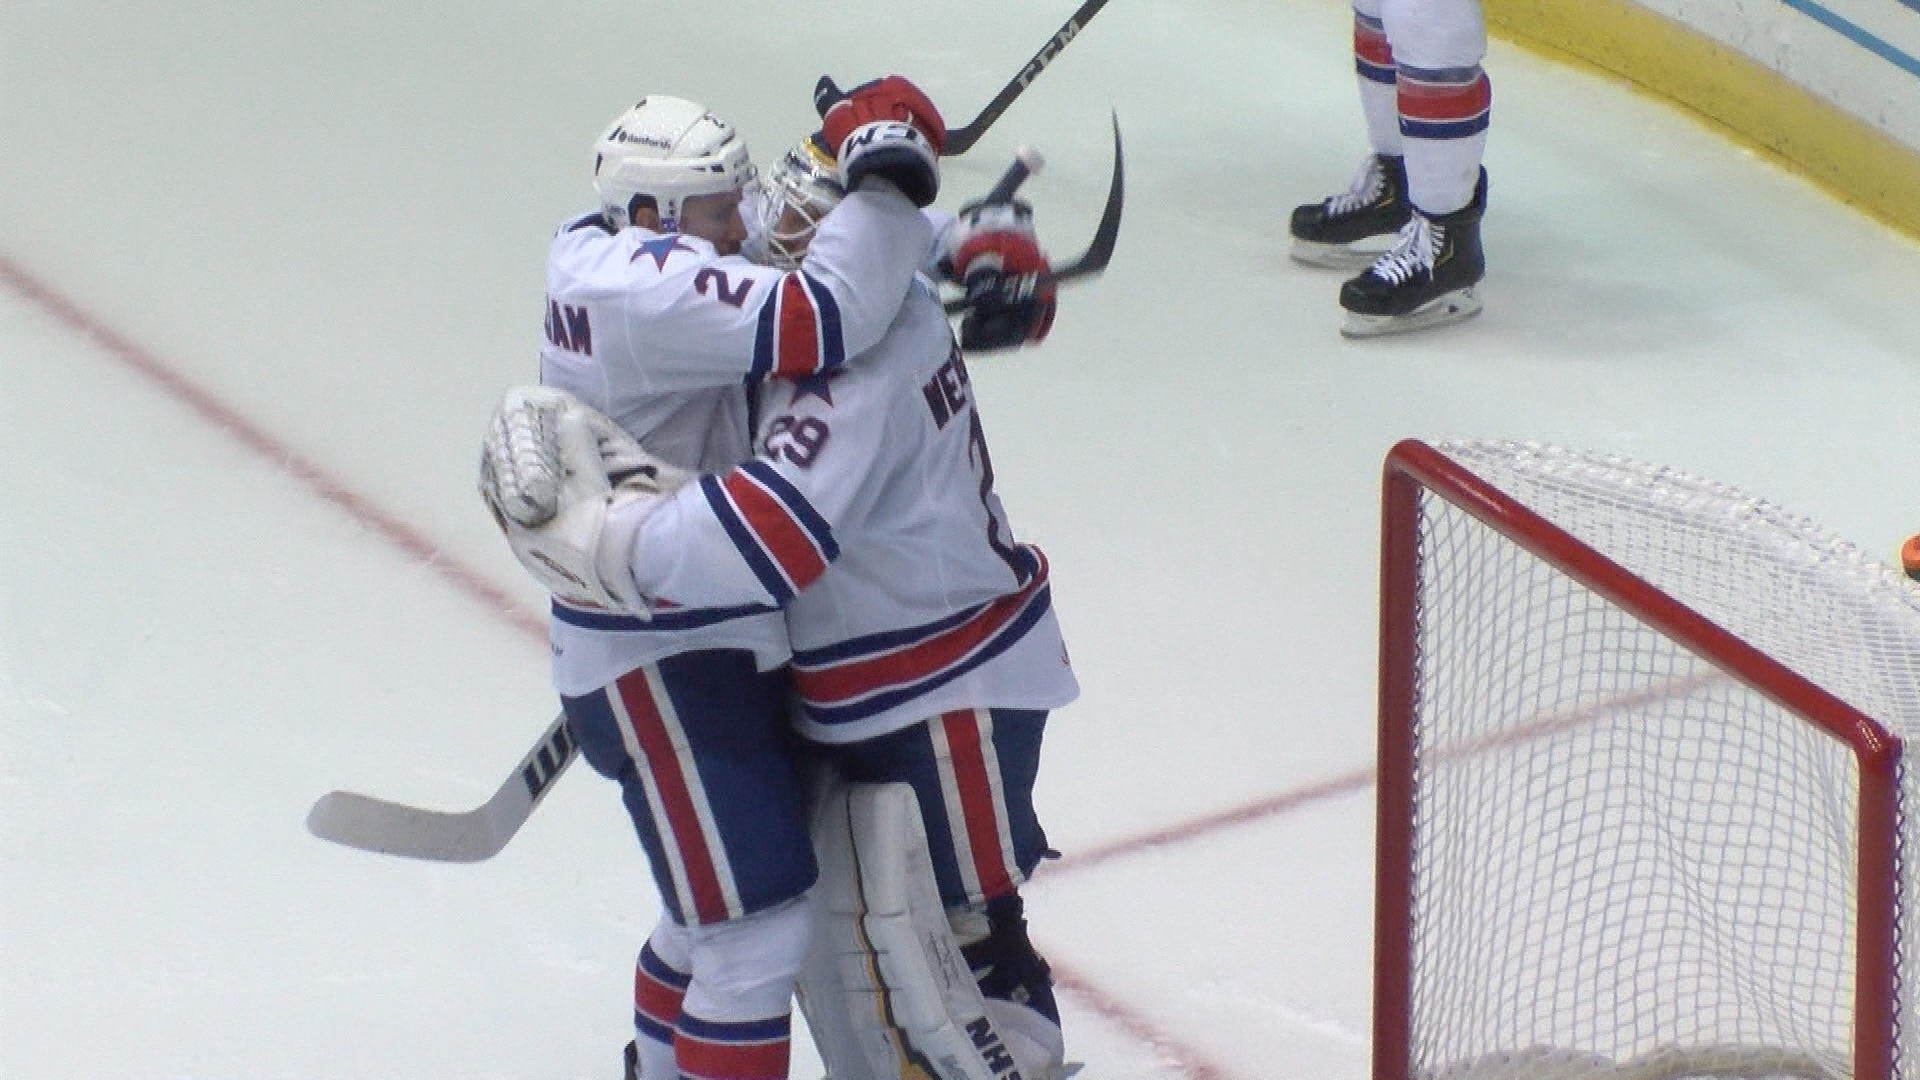 Wedgewood pitches a shutout as Amerks edge the Penguins at home